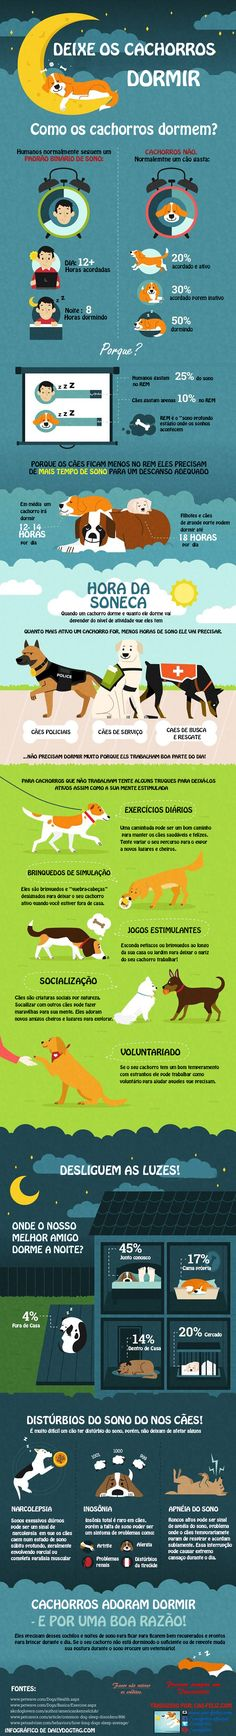 Dog Infographic Let Sleeping Dogs Lie Www Dailydogtag C Many people store fat in the belly, and losing fat from this area can be hard. Here are Dog Infographic Let Sleeping Dogs Lie Www Dailydogtag C tips to lose belly fat, based on studies. Dog Care Tips, Pet Care, Pet Tips, Education Canine, Dog Facts, Facts About Dogs, Beagle Facts, Dachshund Facts, Sleeping Dogs